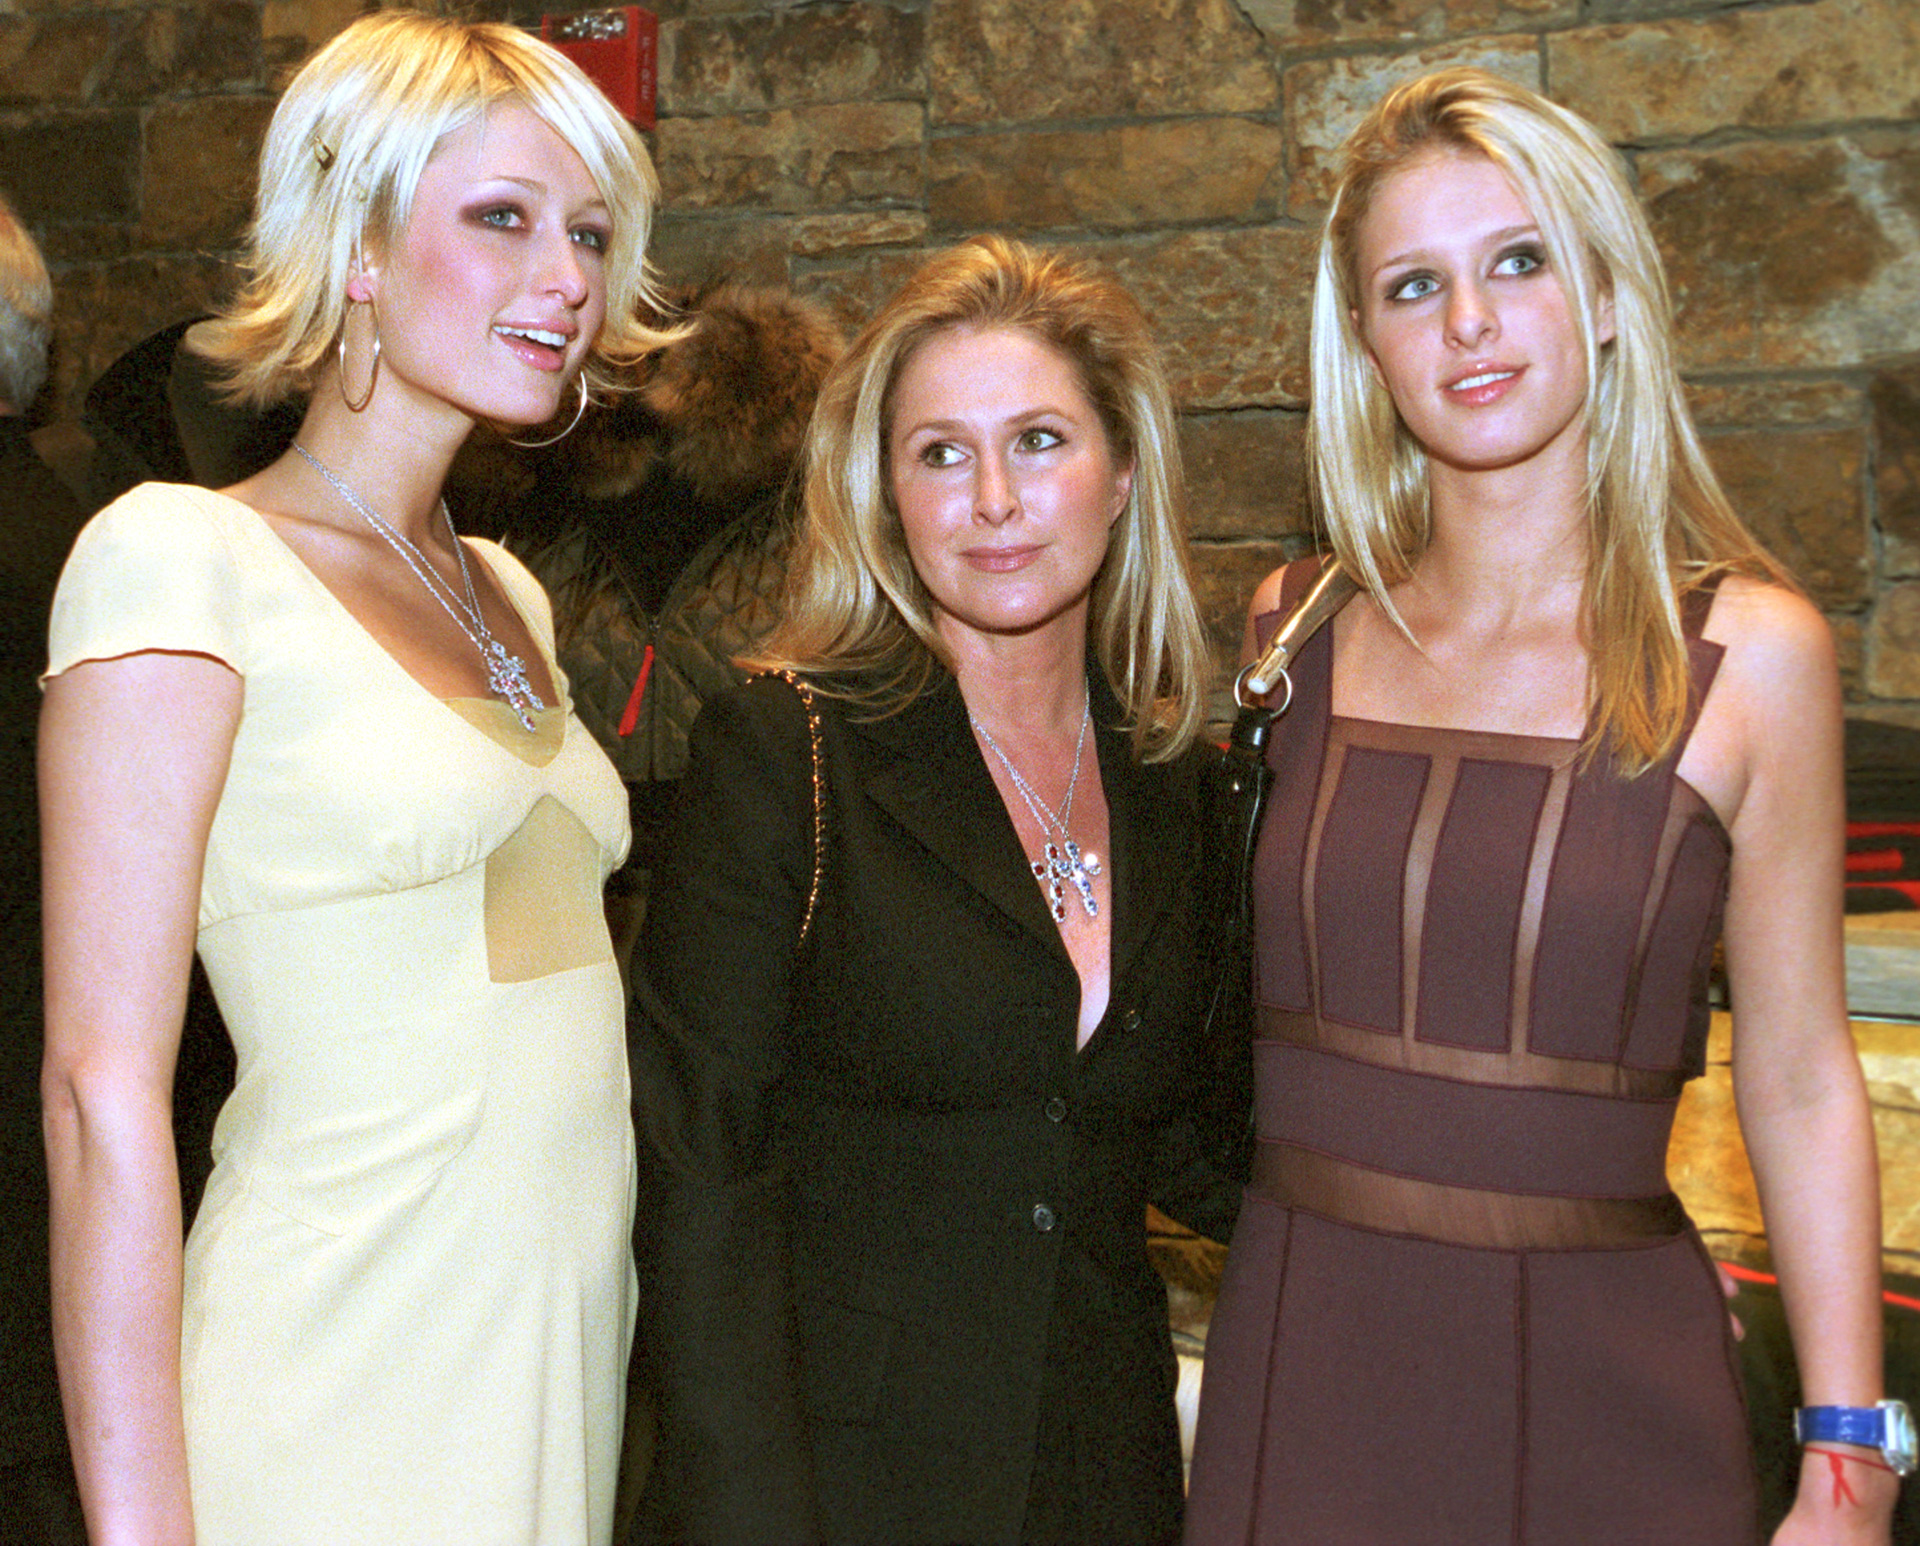 Paris, Kathy and Nicky Hilton